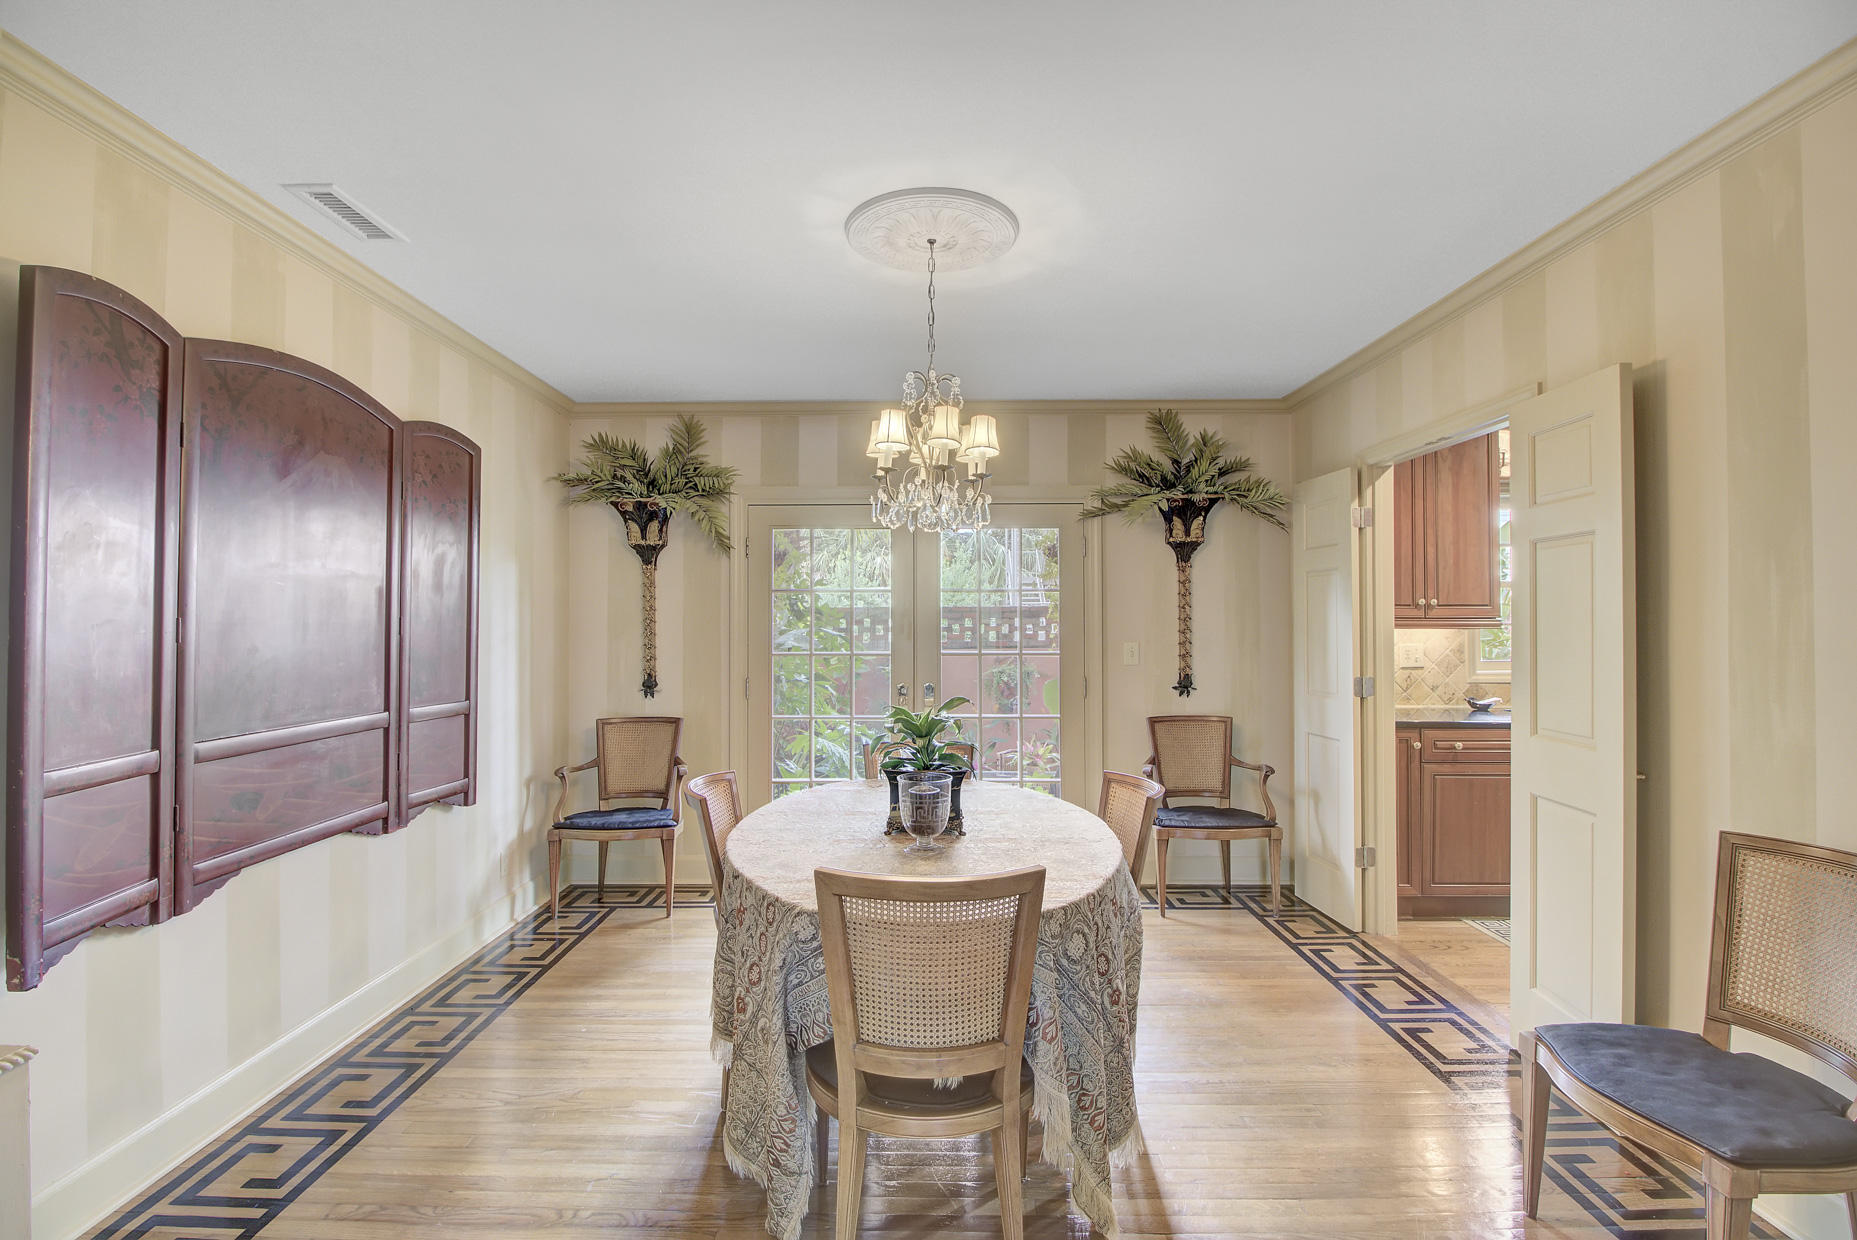 South of Broad Homes For Sale - 2 Colonial, Charleston, SC - 3